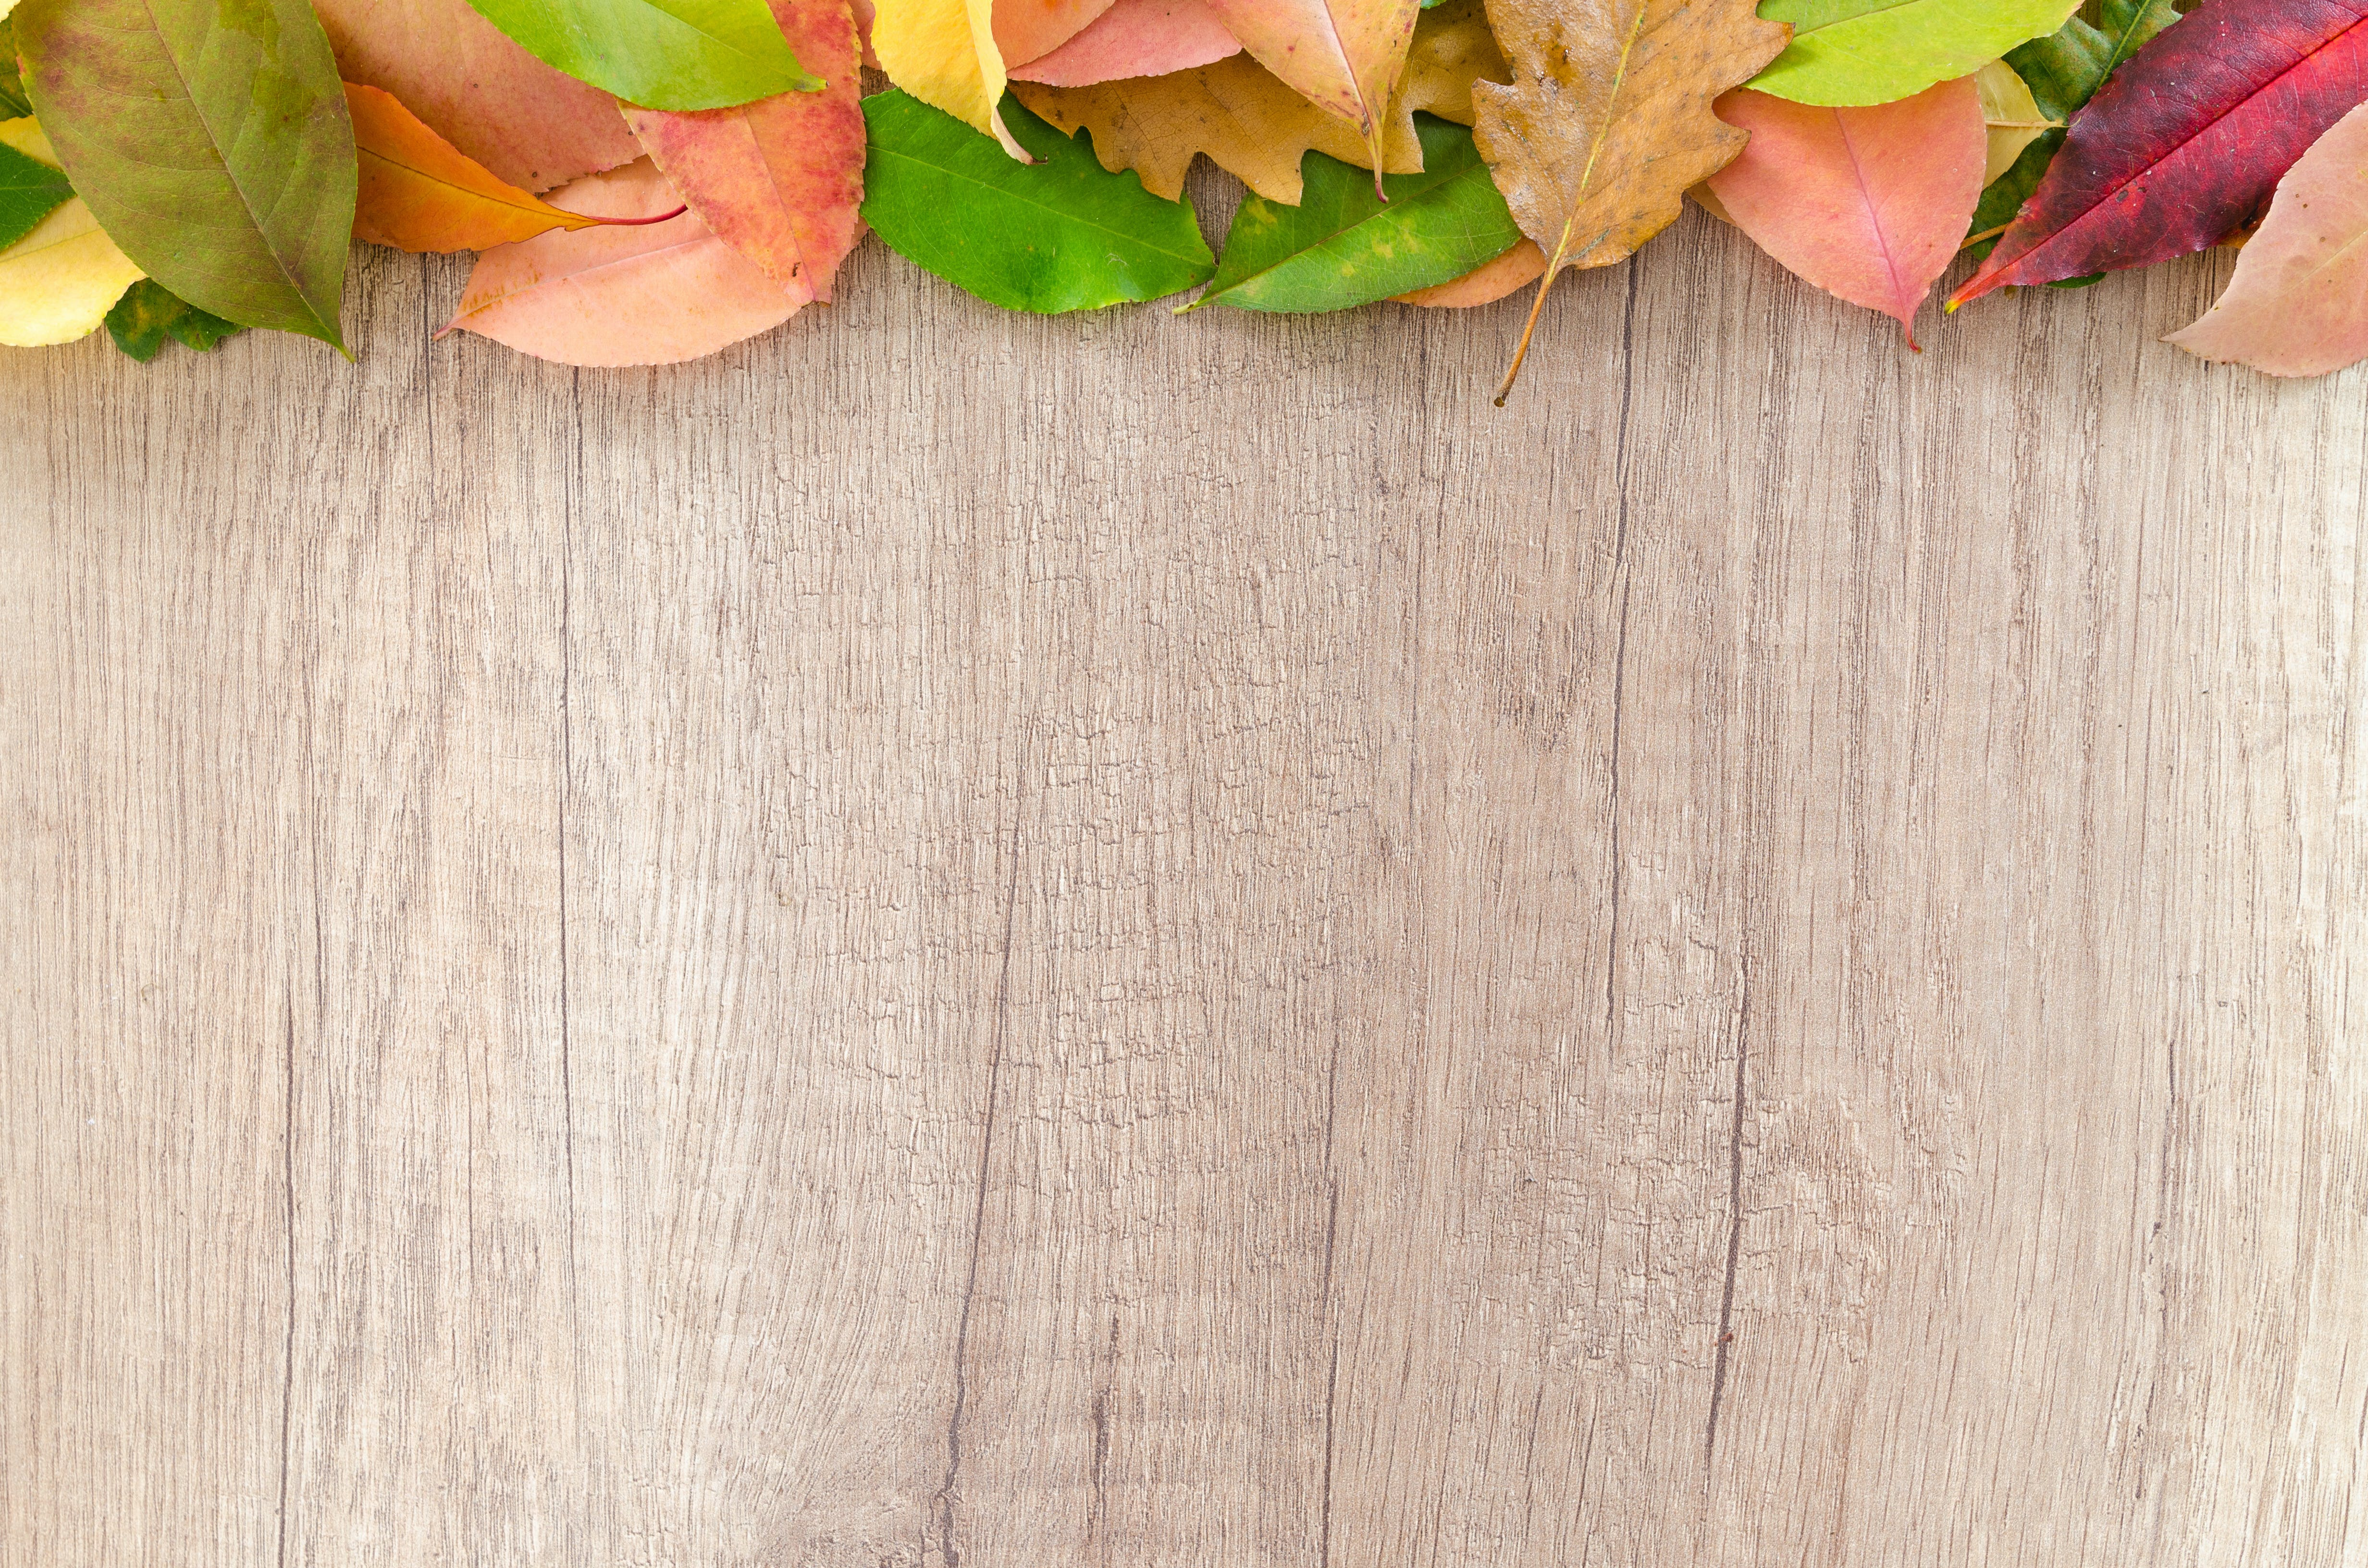 Assorted-color Leaves on Wooden Surface